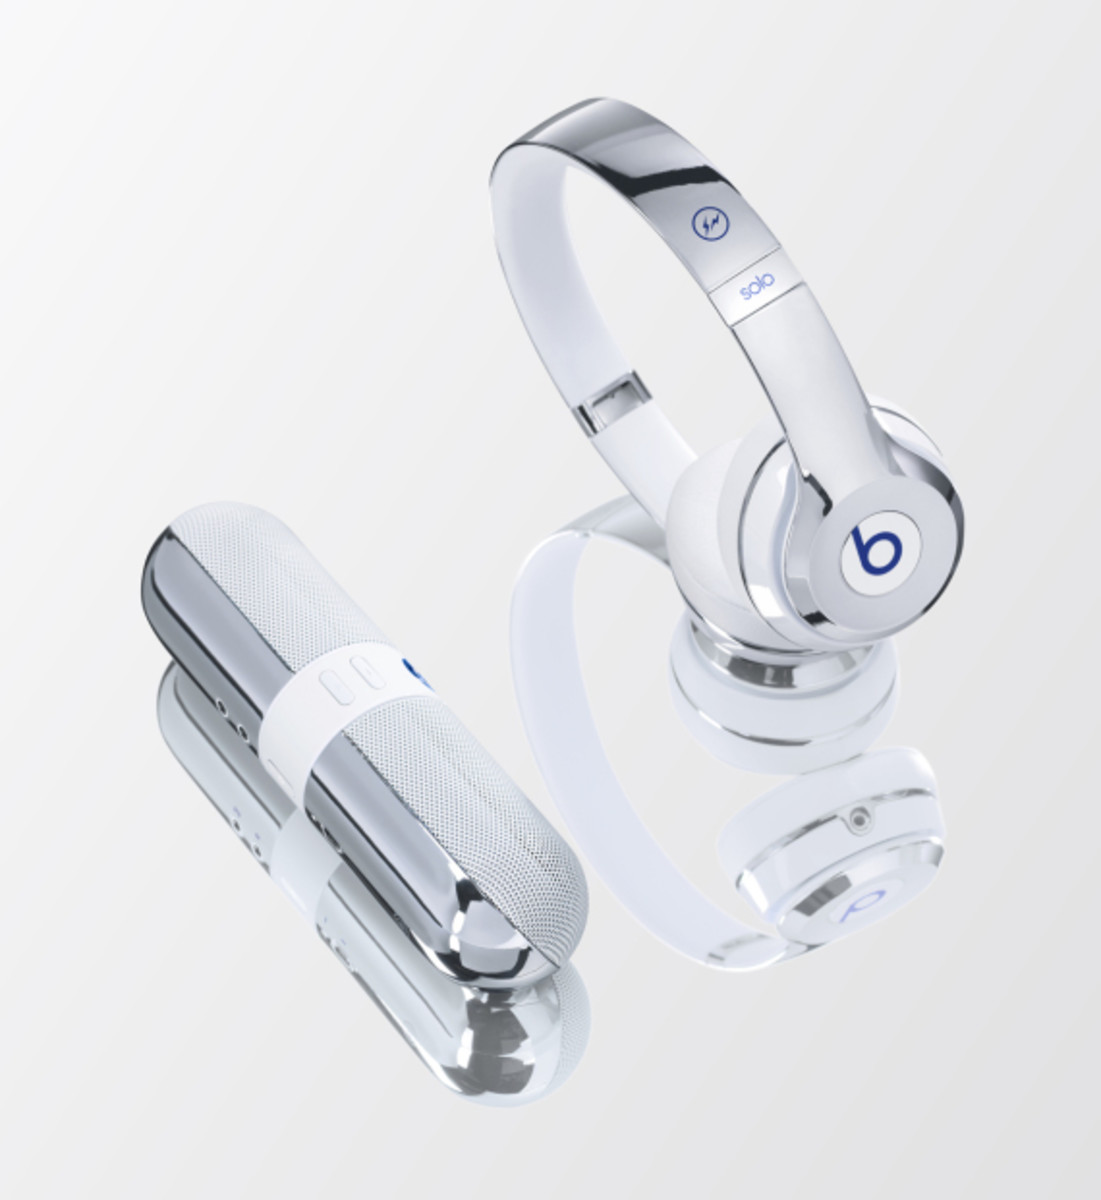 fragment-design-beats-by-dre-collection-03